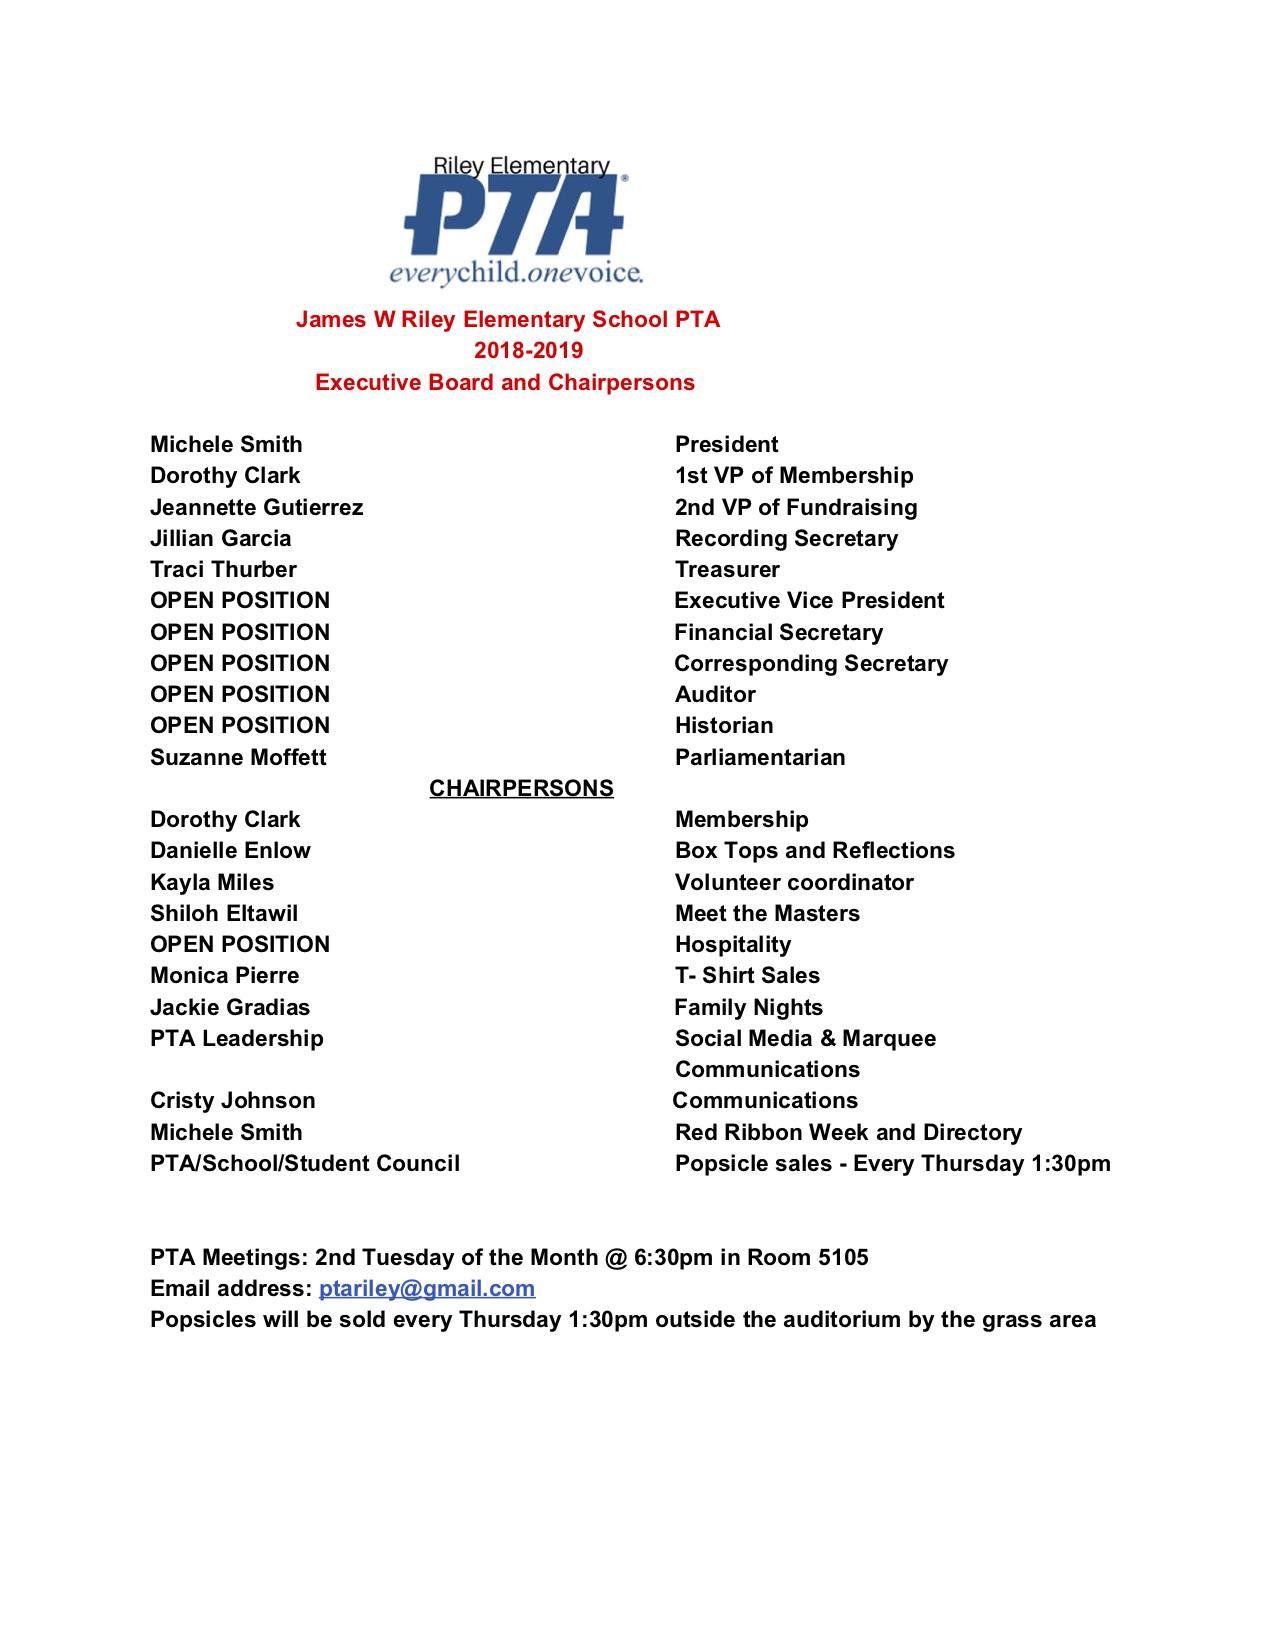 PTA Chairpersons Updated